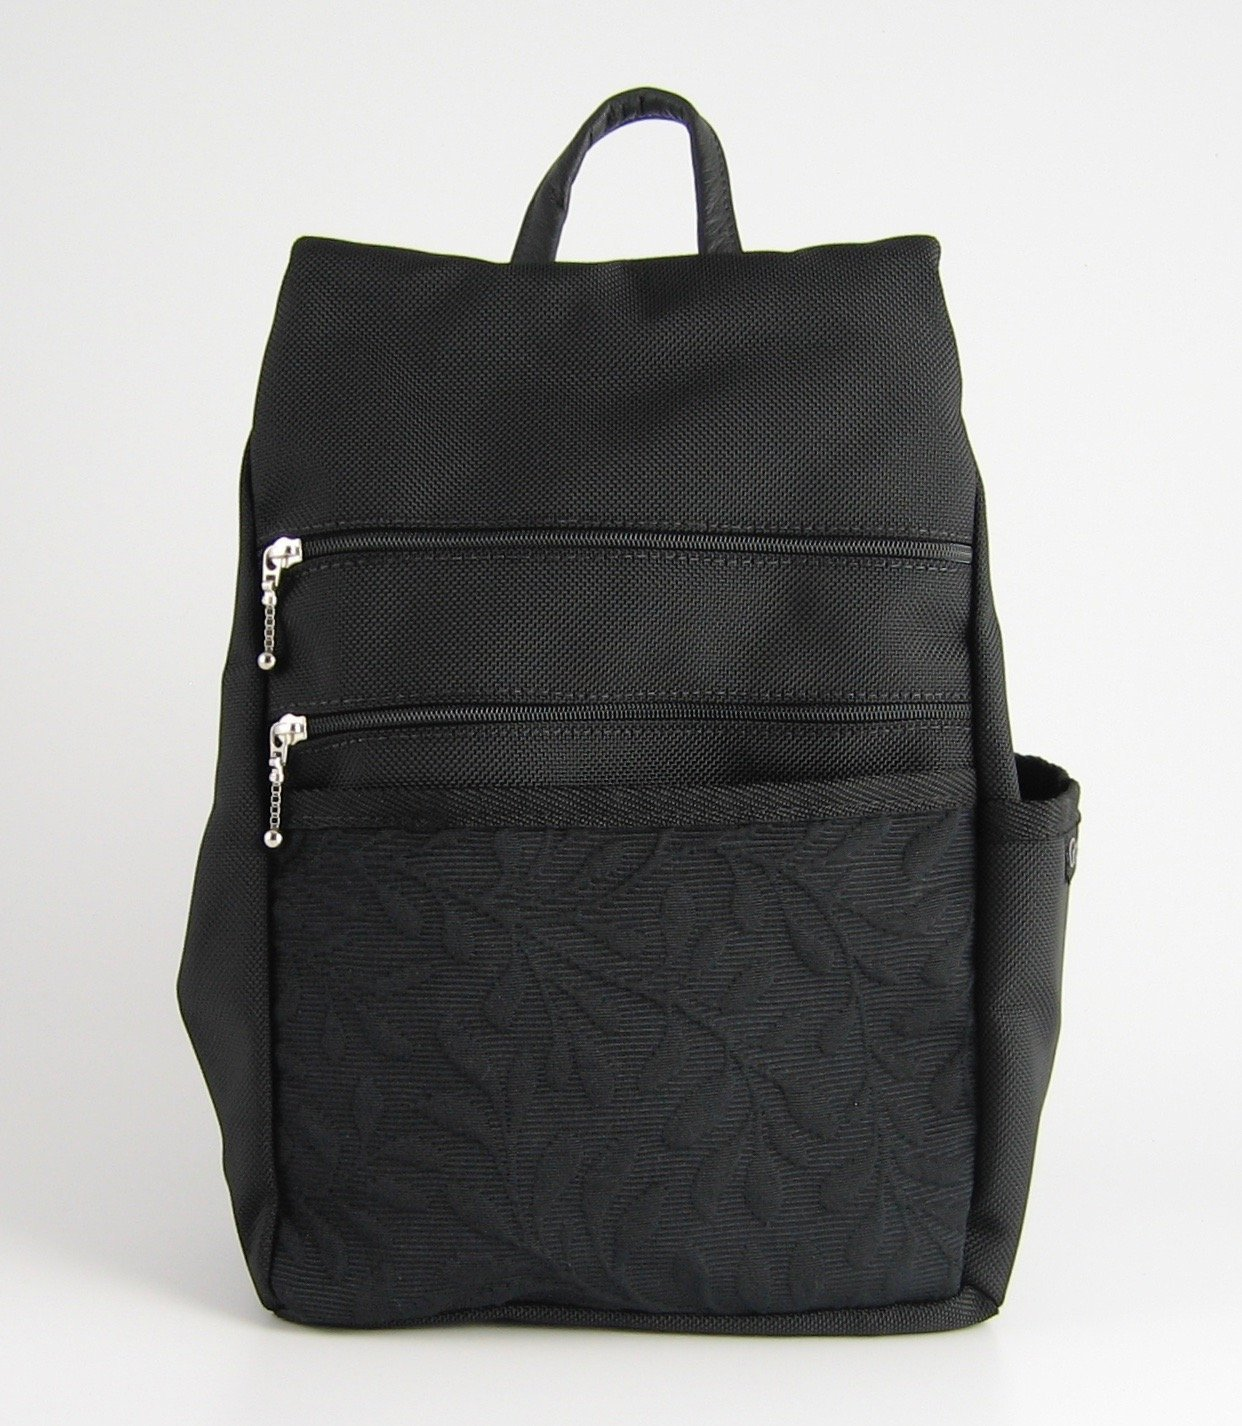 Backpack Purse by GreatBags   Small Black Womens Designer Backpack + Lightweight + Stylish + Durable